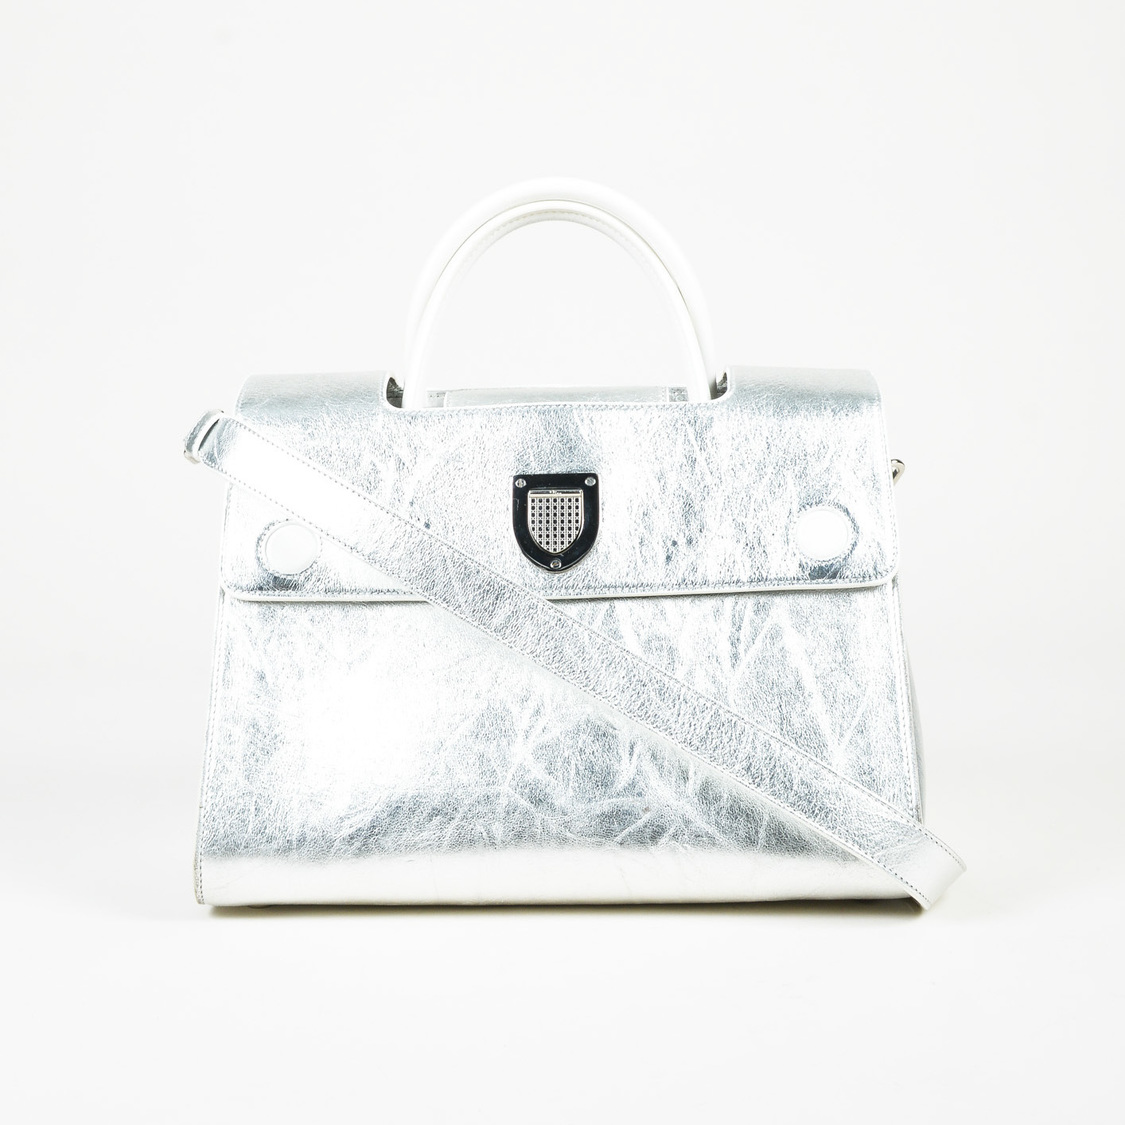 Details about Christian Dior  3400 Metallic Silver Calfskin Leather